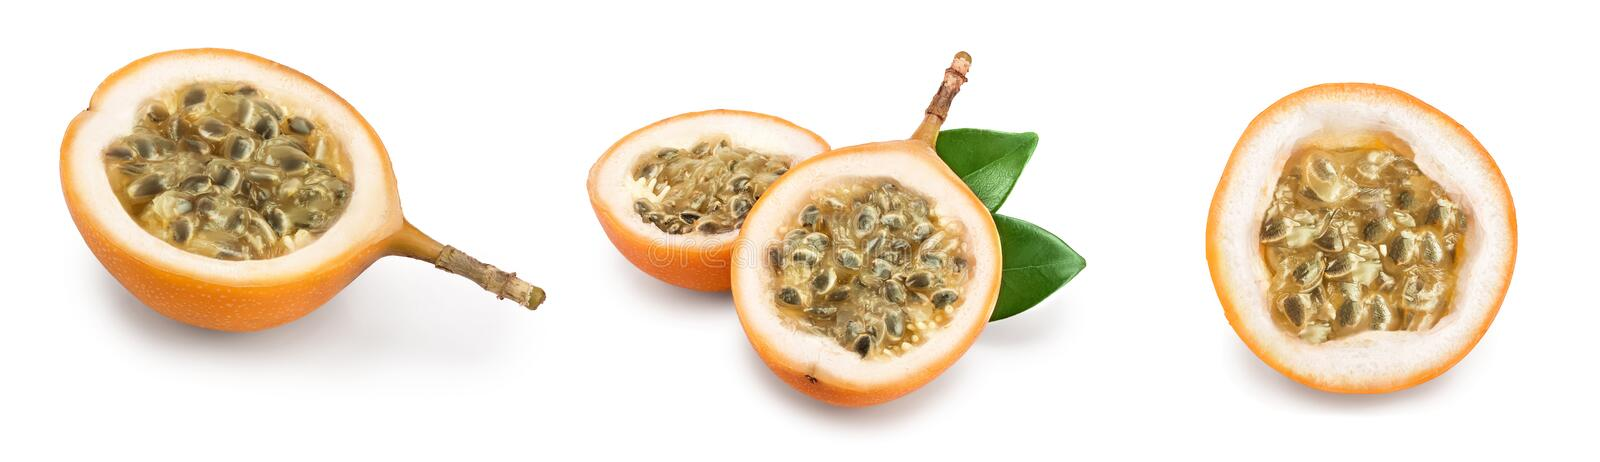 Granadilla or yellow passion fruit with leaf isolated on white background. Set or collection.  stock photography